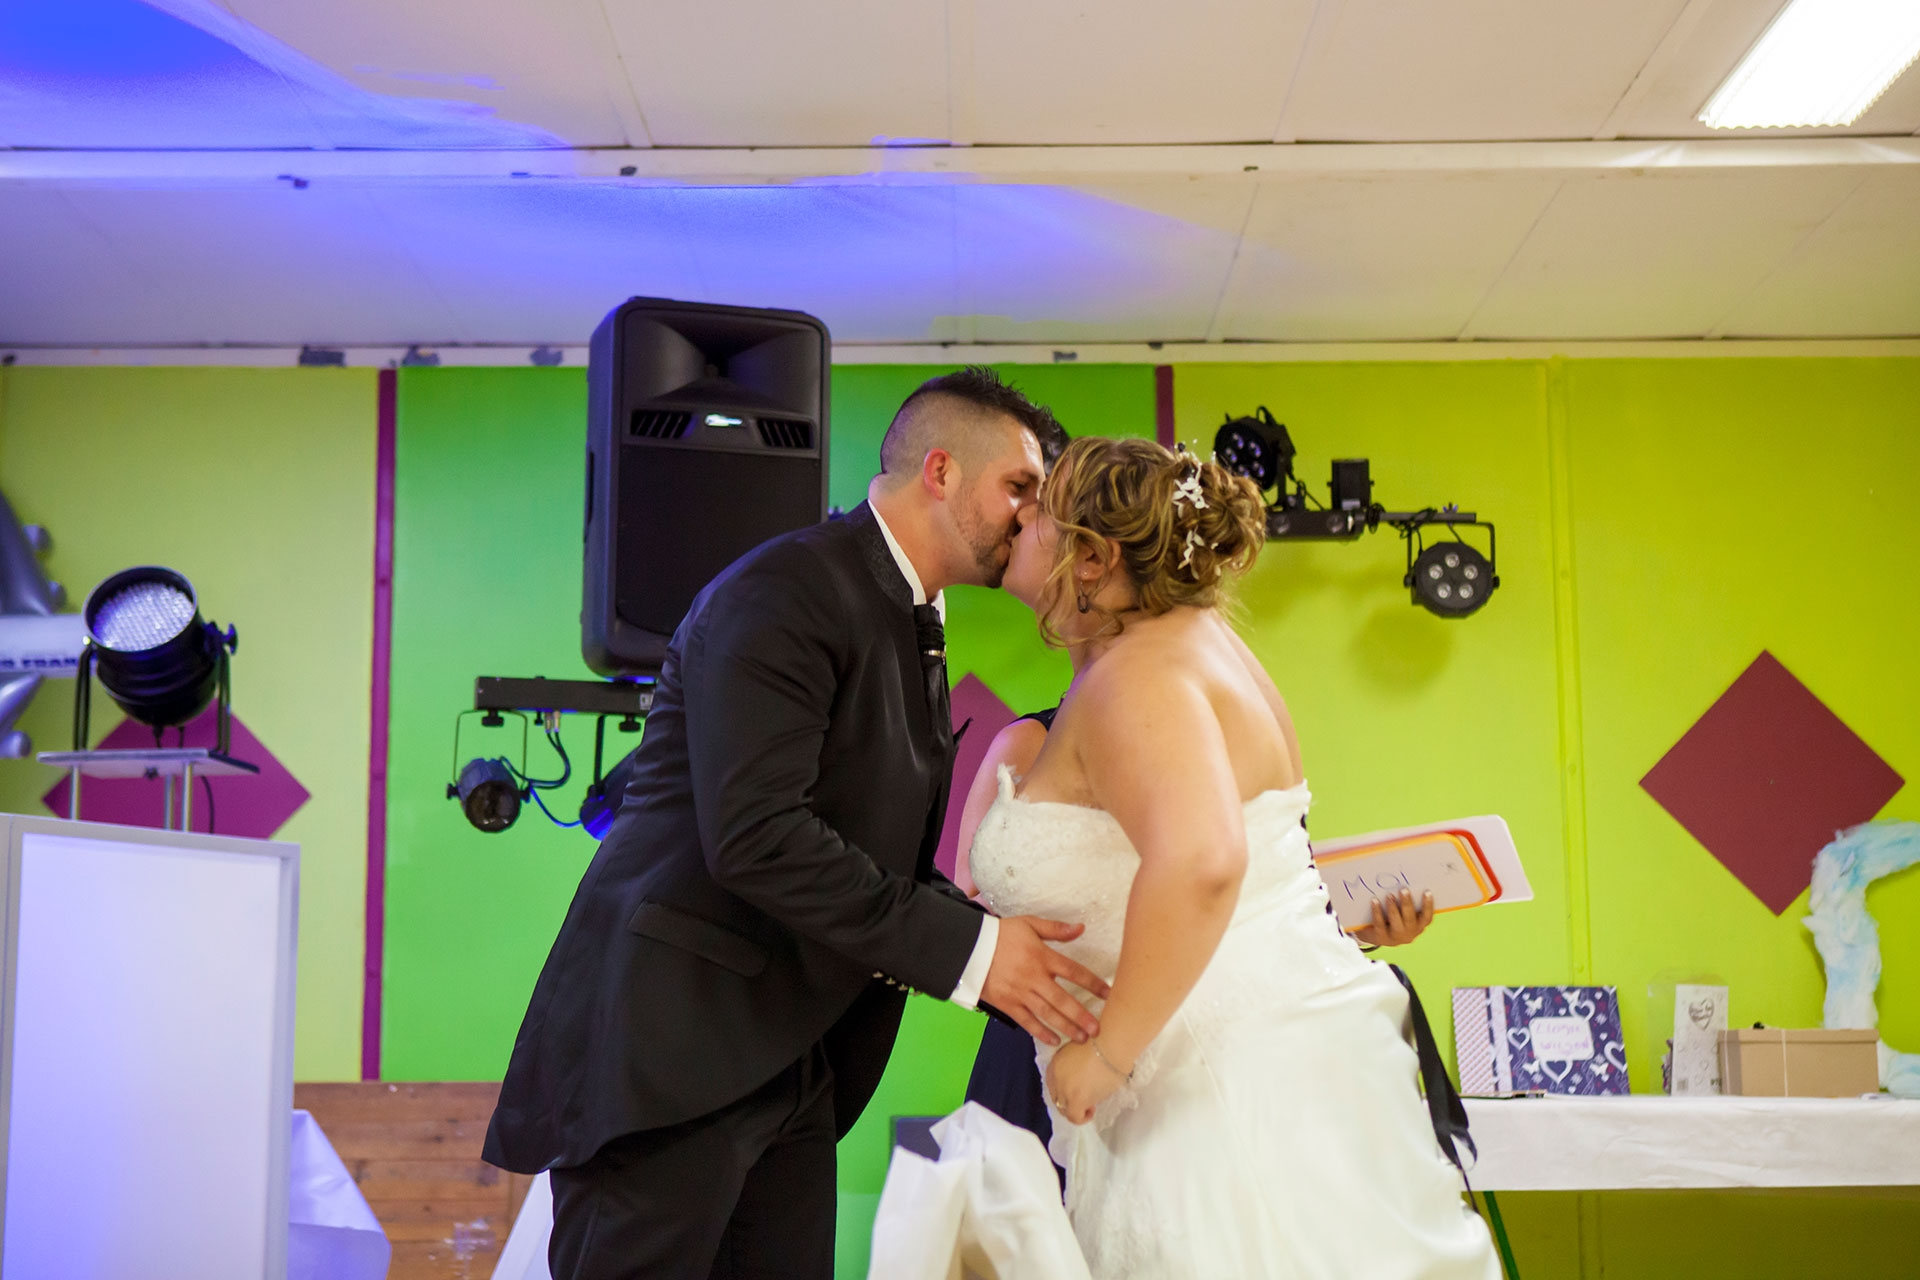 particuliers-evenements-mariages-oui-elodie&wilson-64